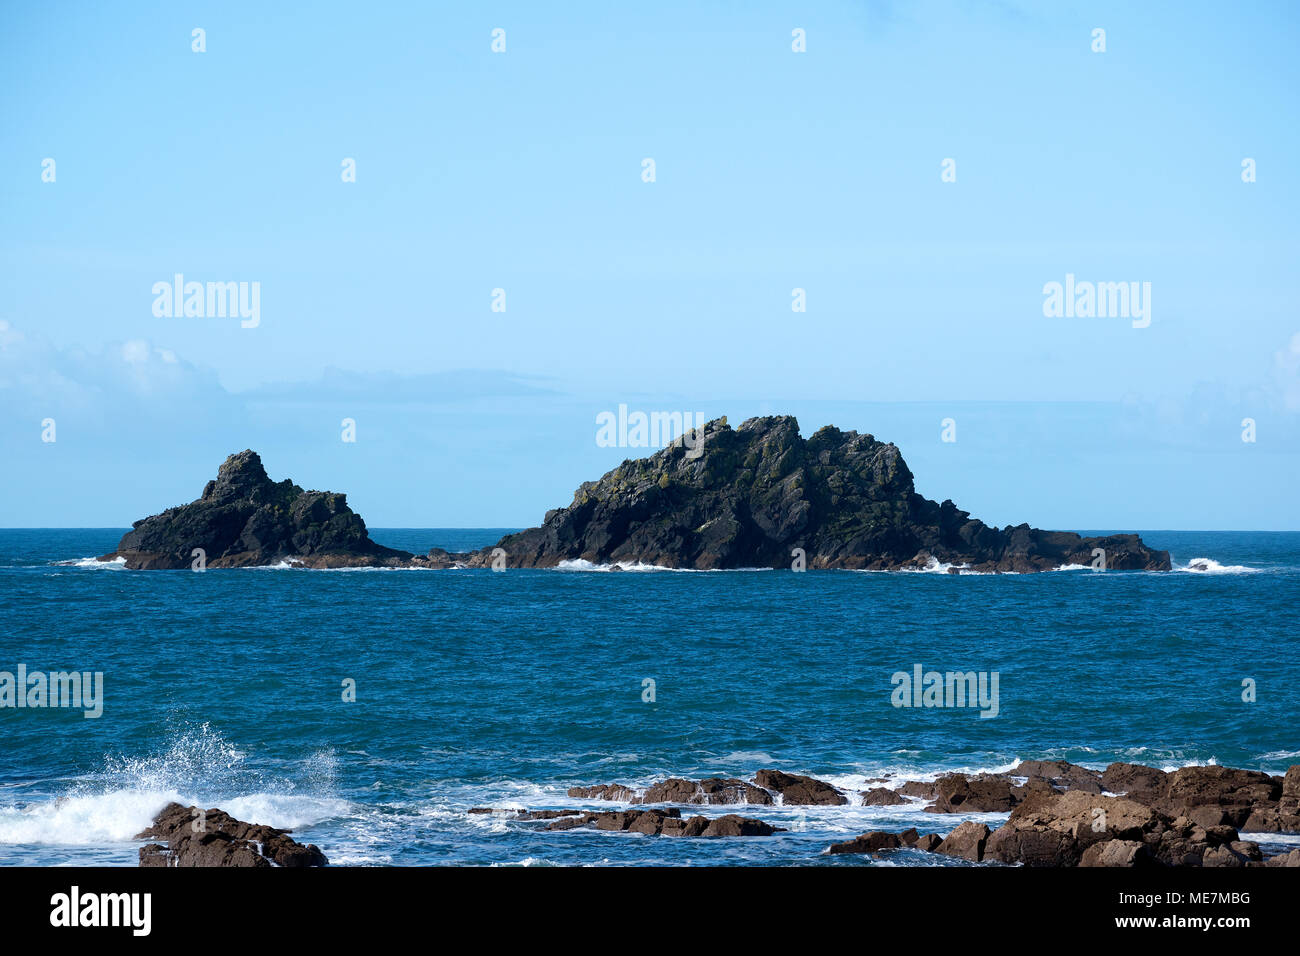 the brisons a twin peaked islet situated in the atlantic ocean off the coast of cape cornwall, england, uk. - Stock Image